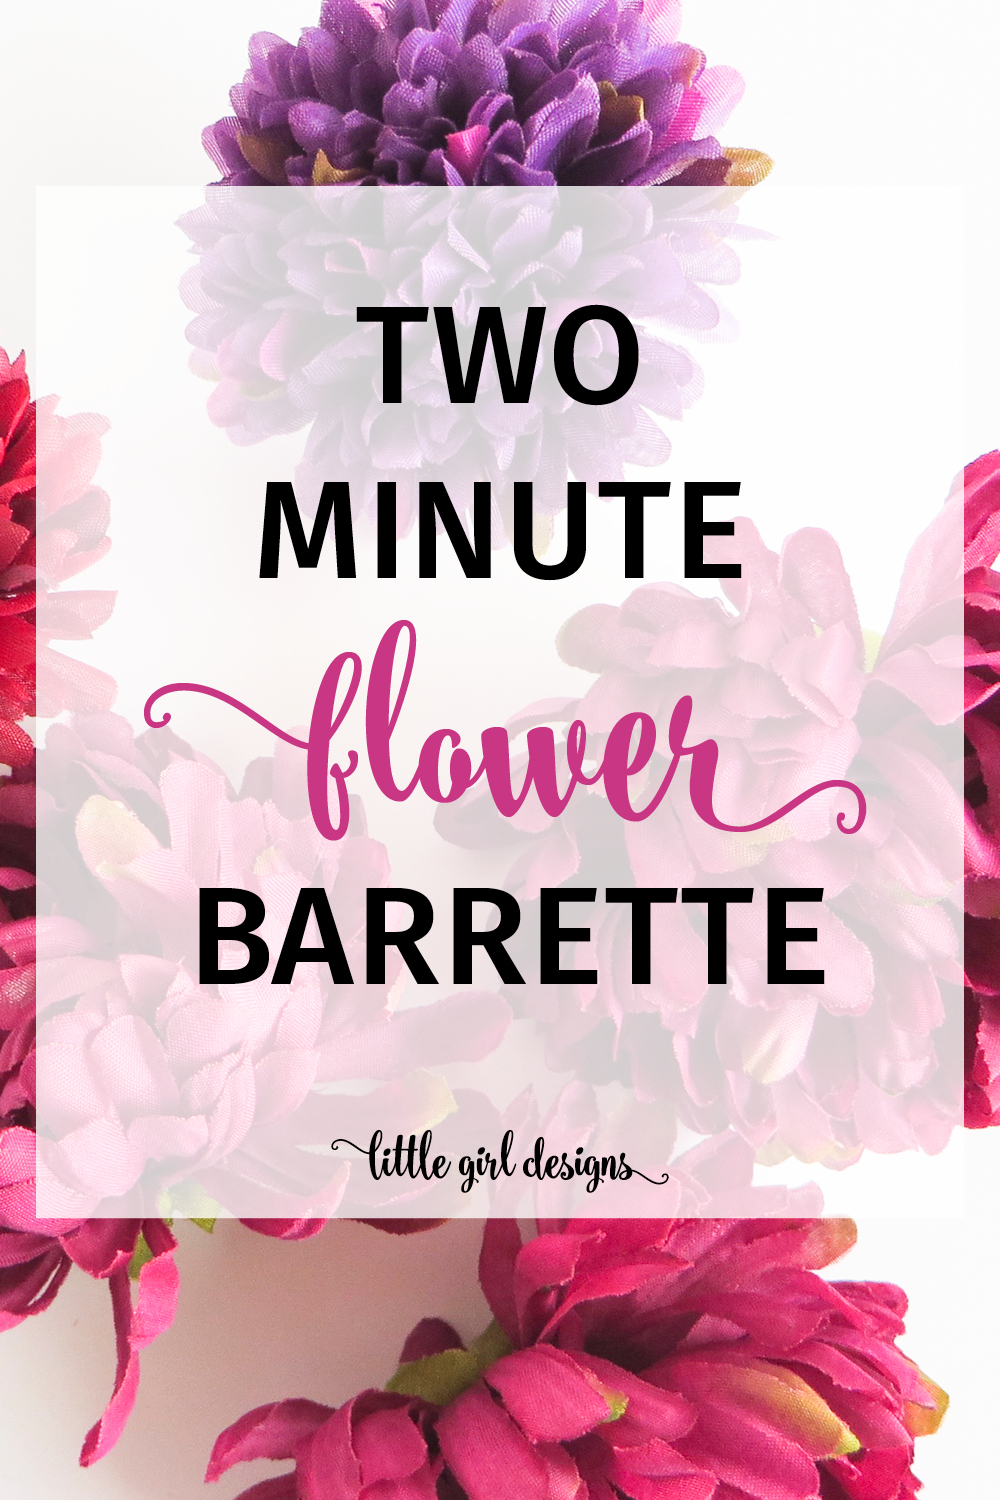 So cute! And I love how easy these were to make. I wanted to DIY a barrette for my flower girl for my wedding and this one only took me a couple of minutes to make. Yes!